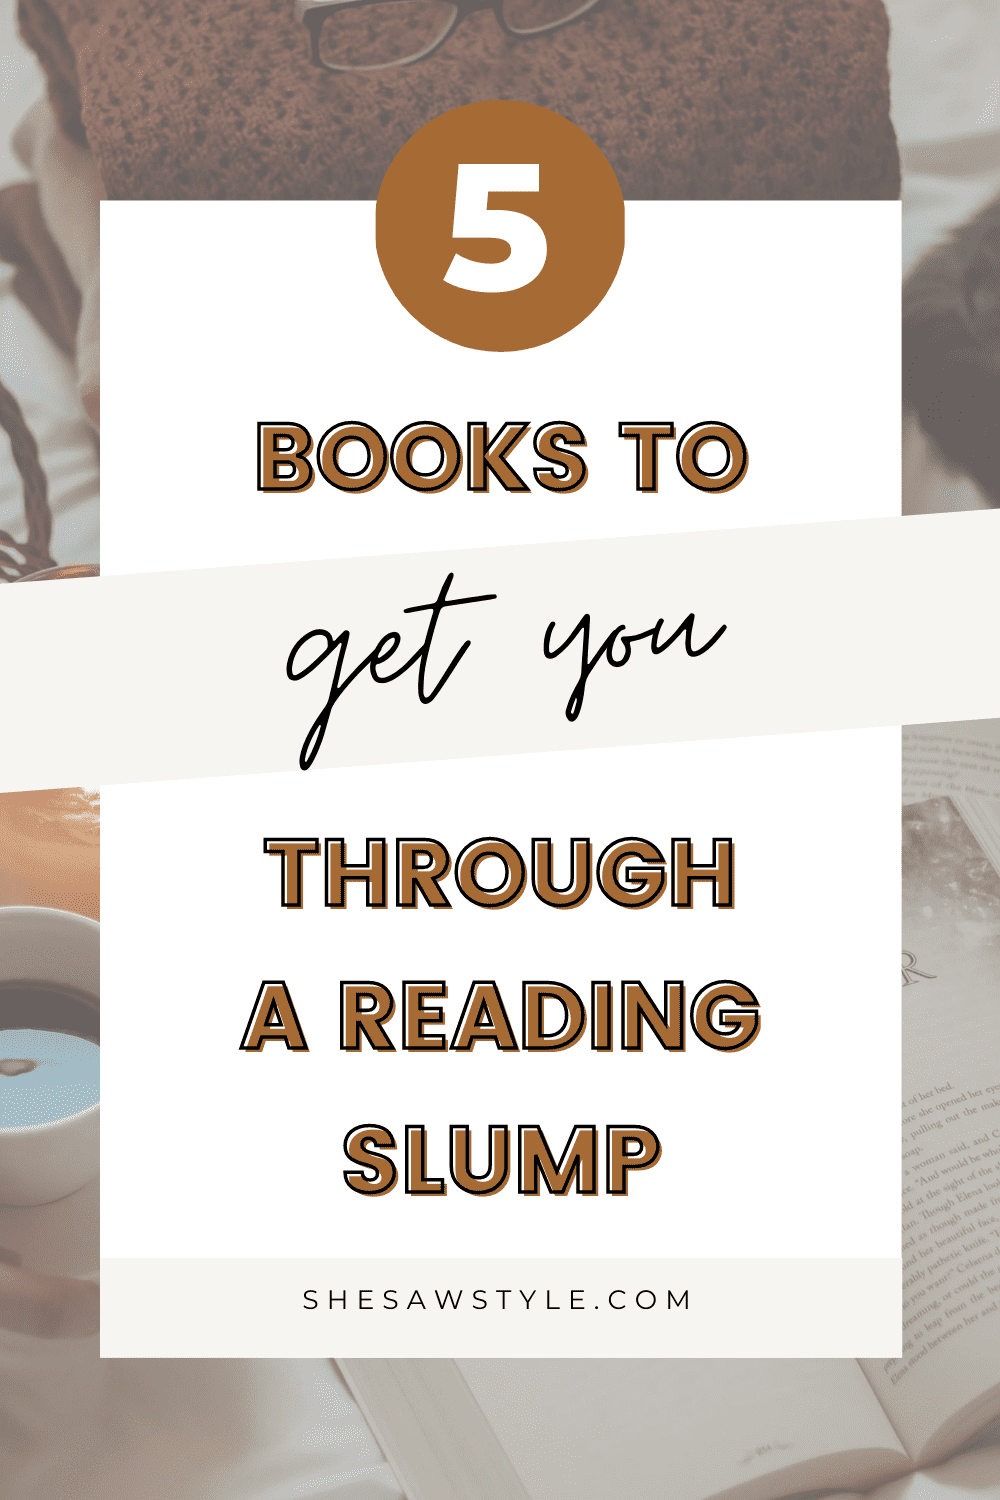 How To Get Through a Reading Slump | She Saw Style